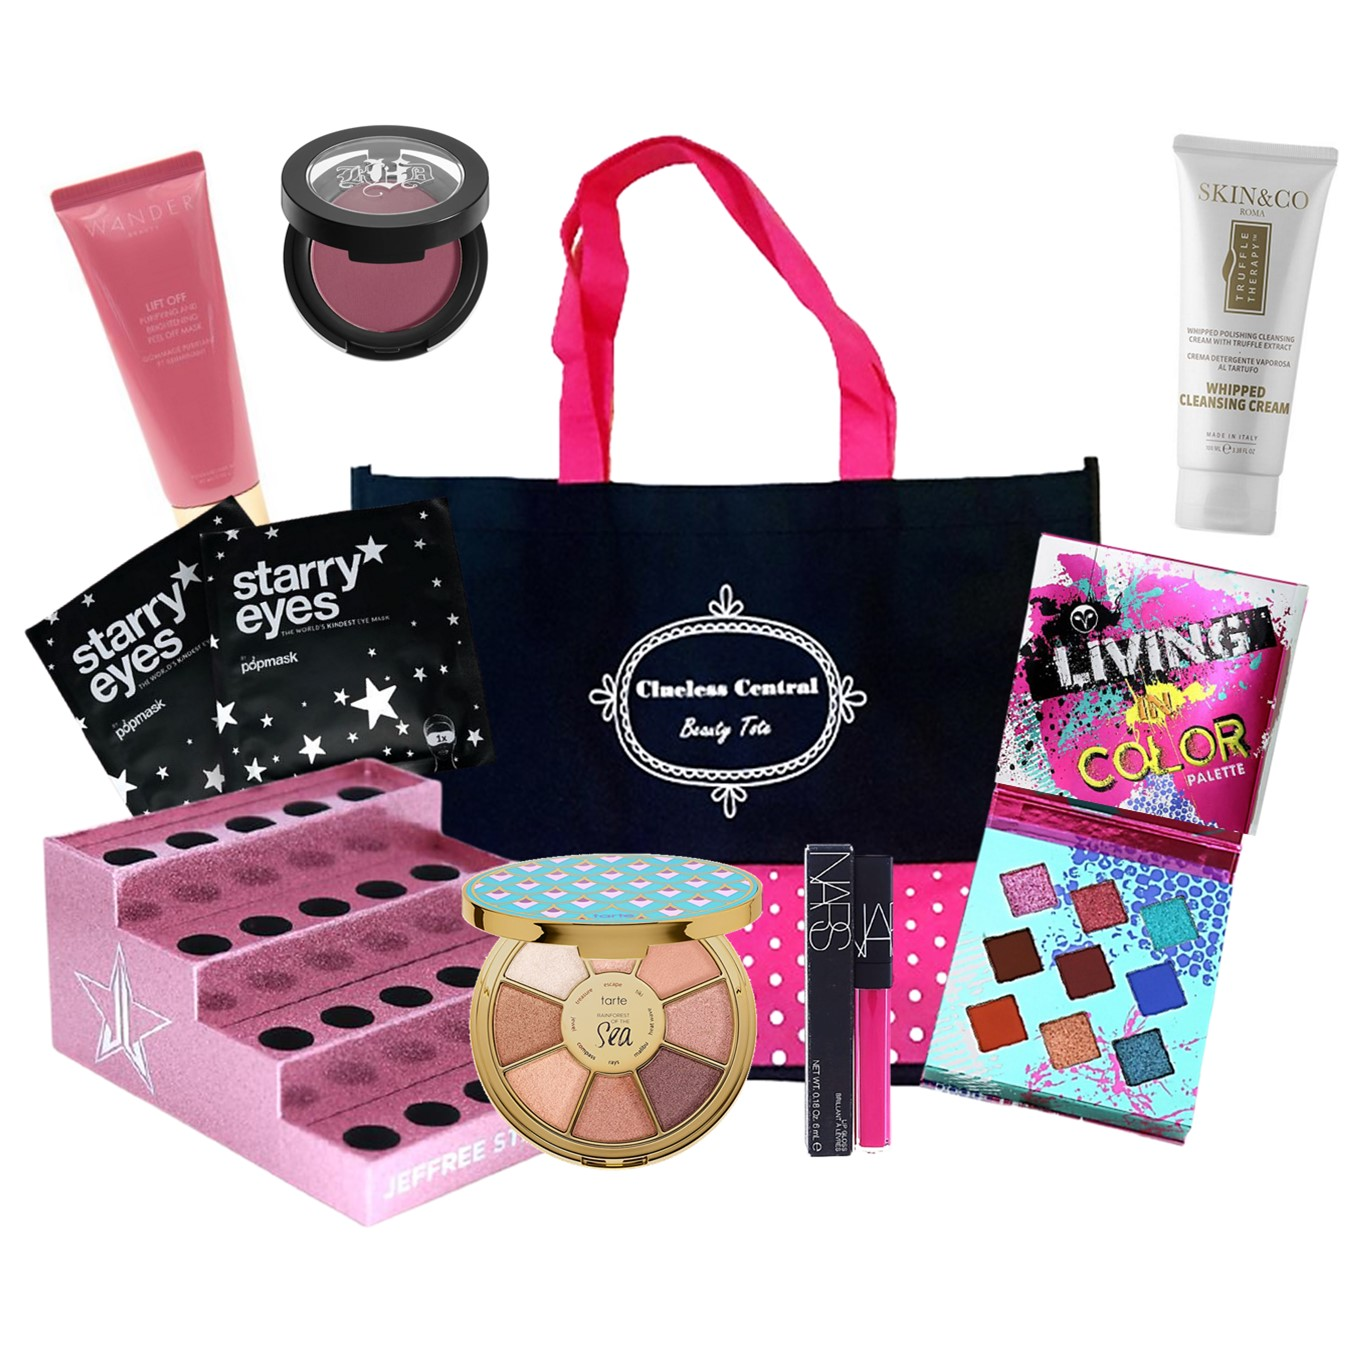 Clueless Central Beauty Tote - Introductory